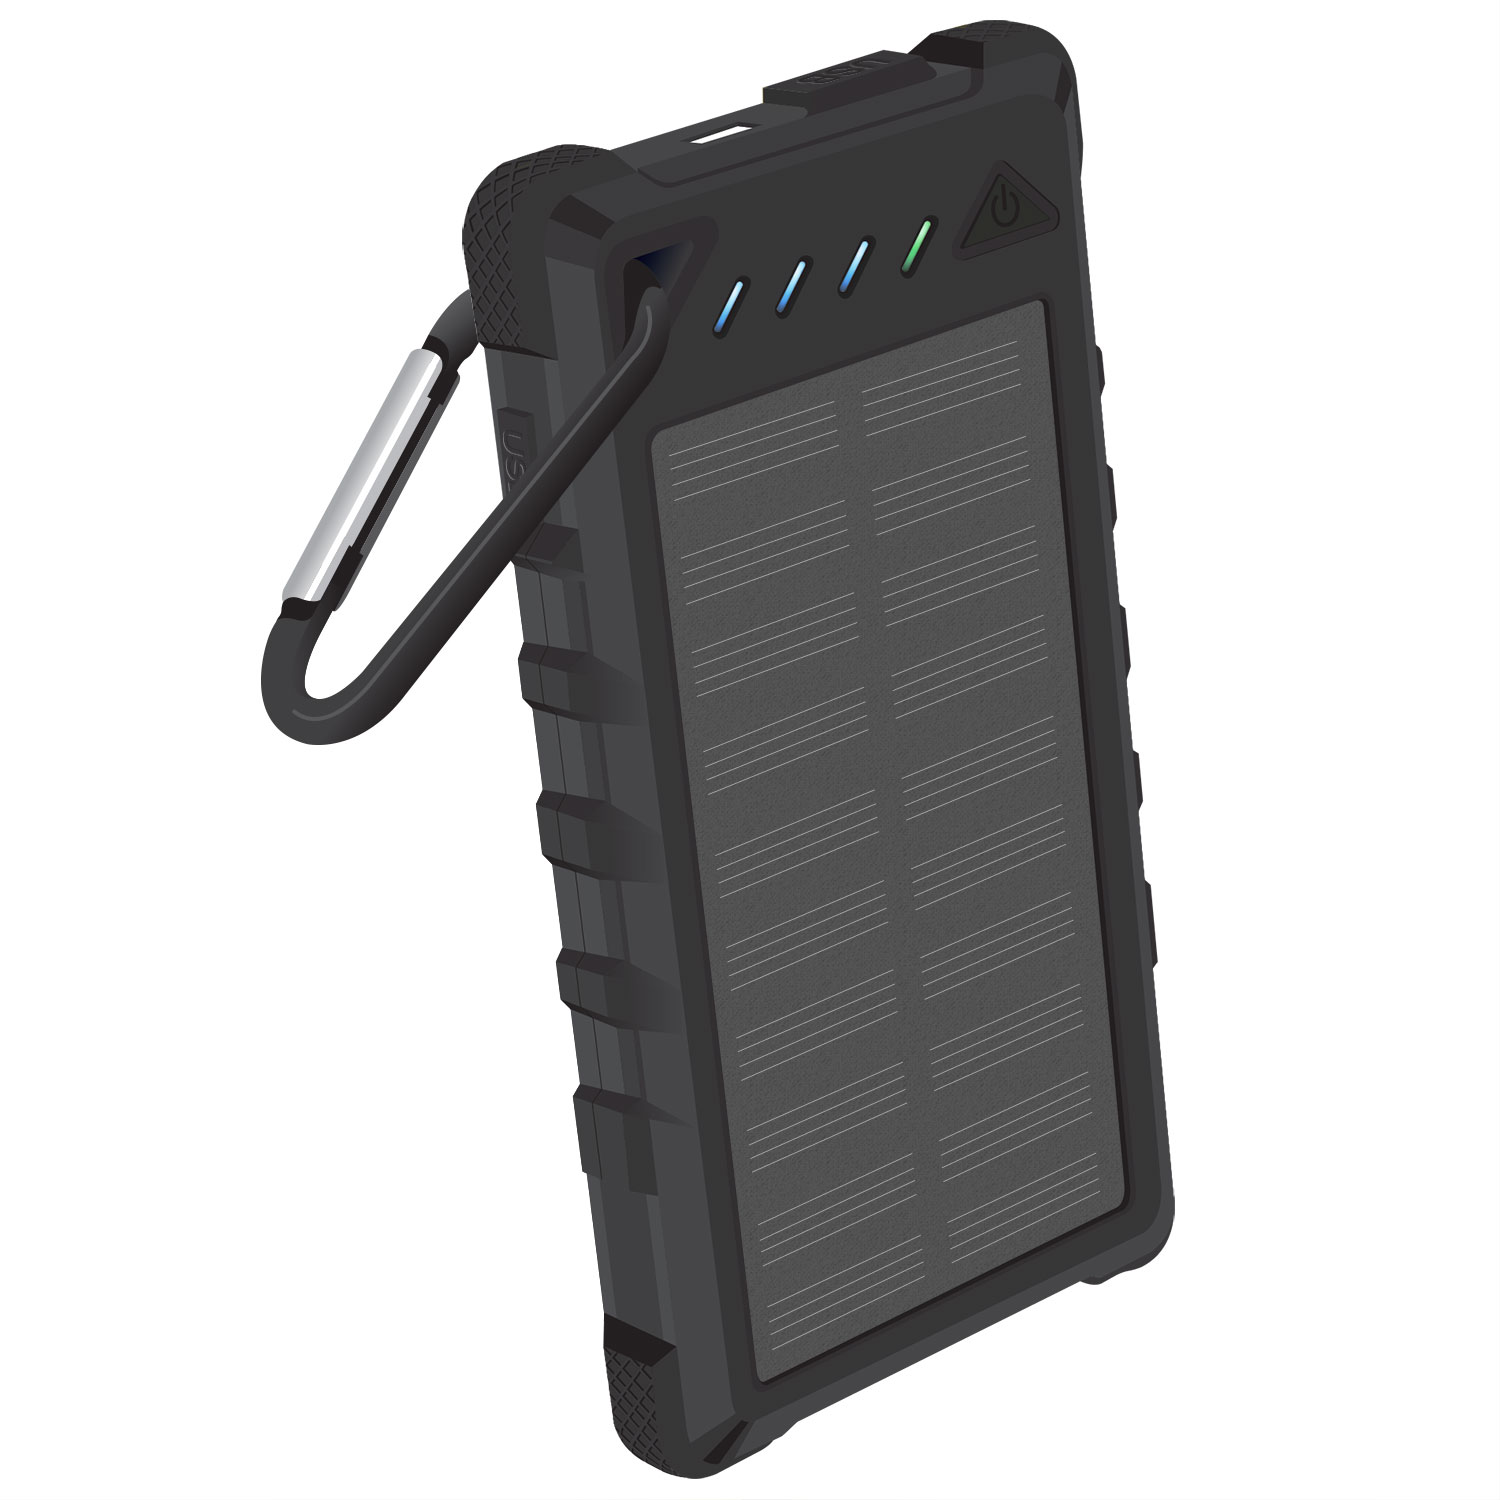 LG Chocolate Touch (VX8575) Solar Powered Portable PowerBank Black